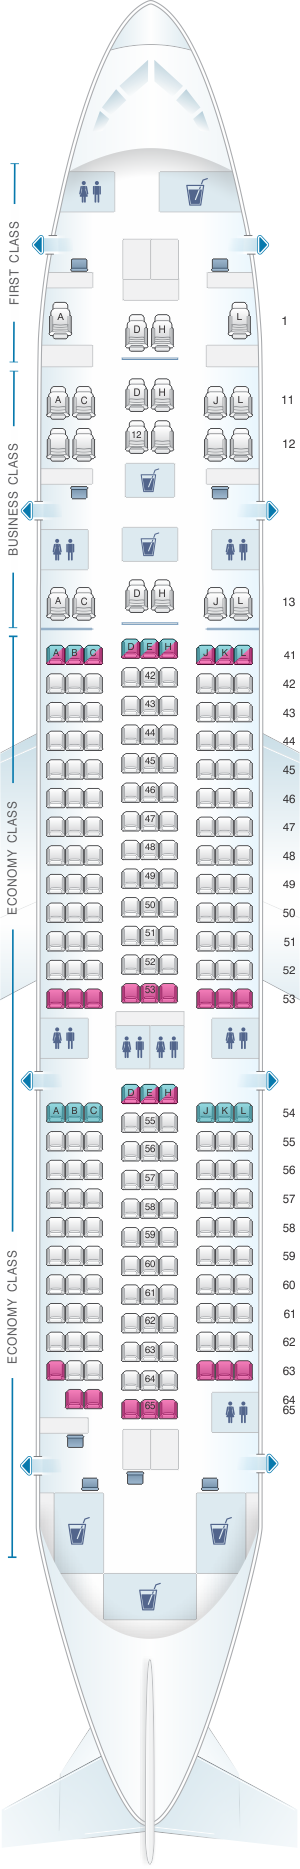 Seat map for Xiamen Airlines Boeing B787-8